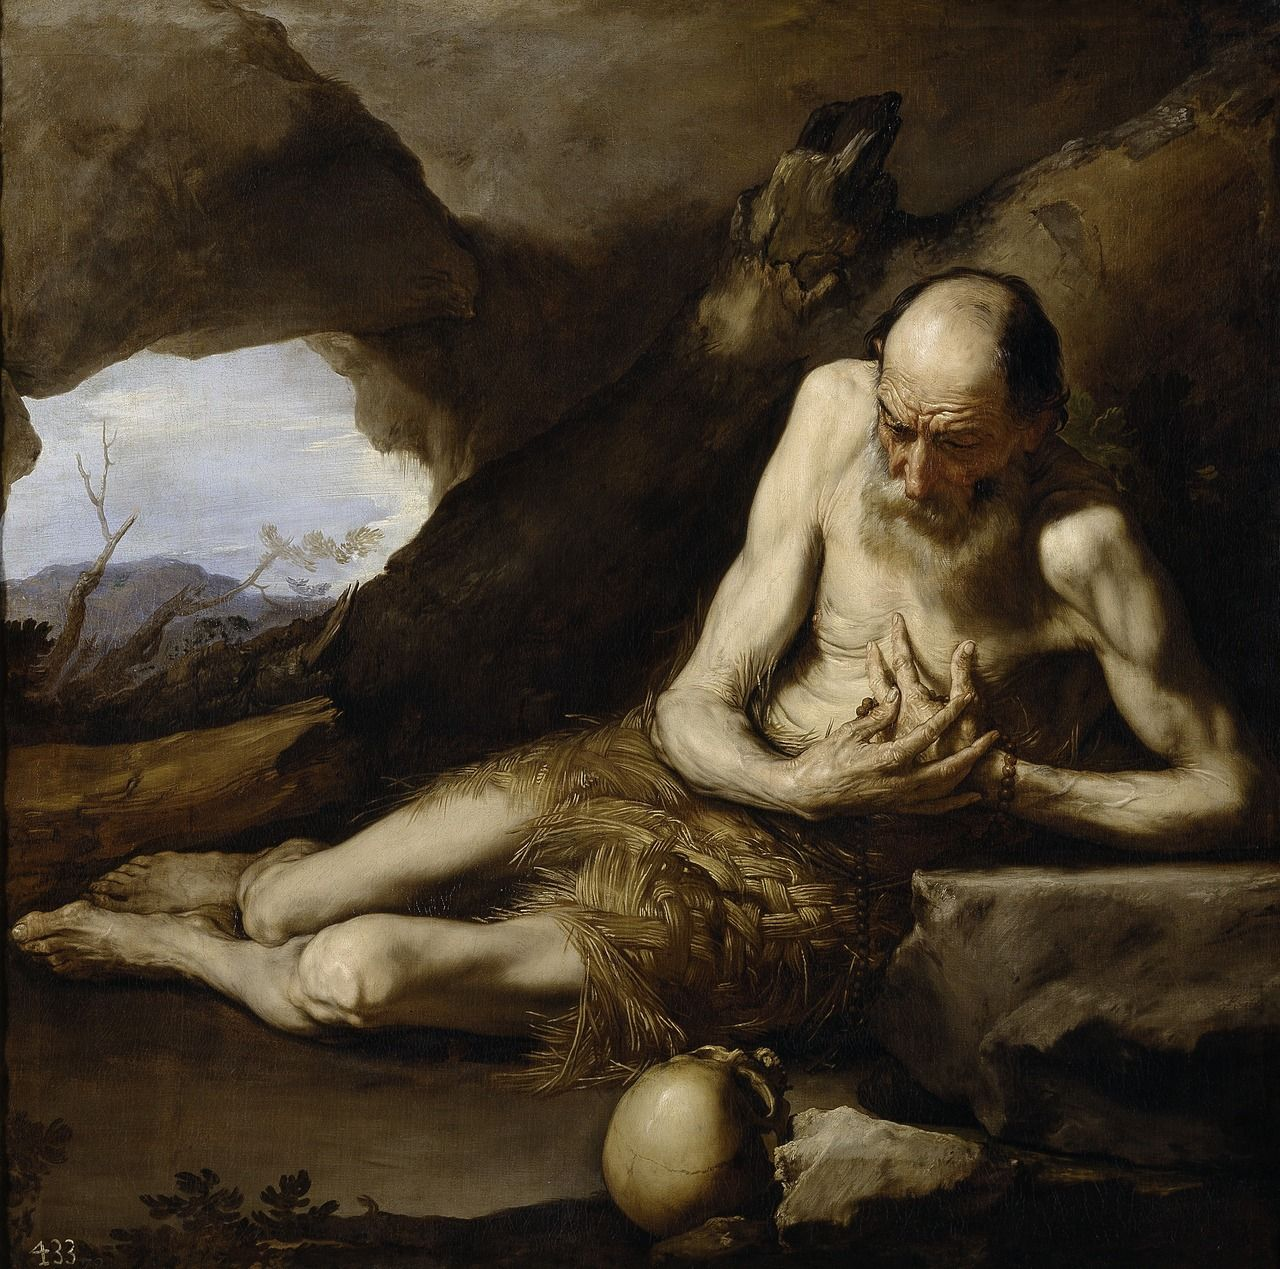 Jusepe de Ribera, Saint Paul the Hermit, 1640. Museo del Prado, Madrid, Spain.